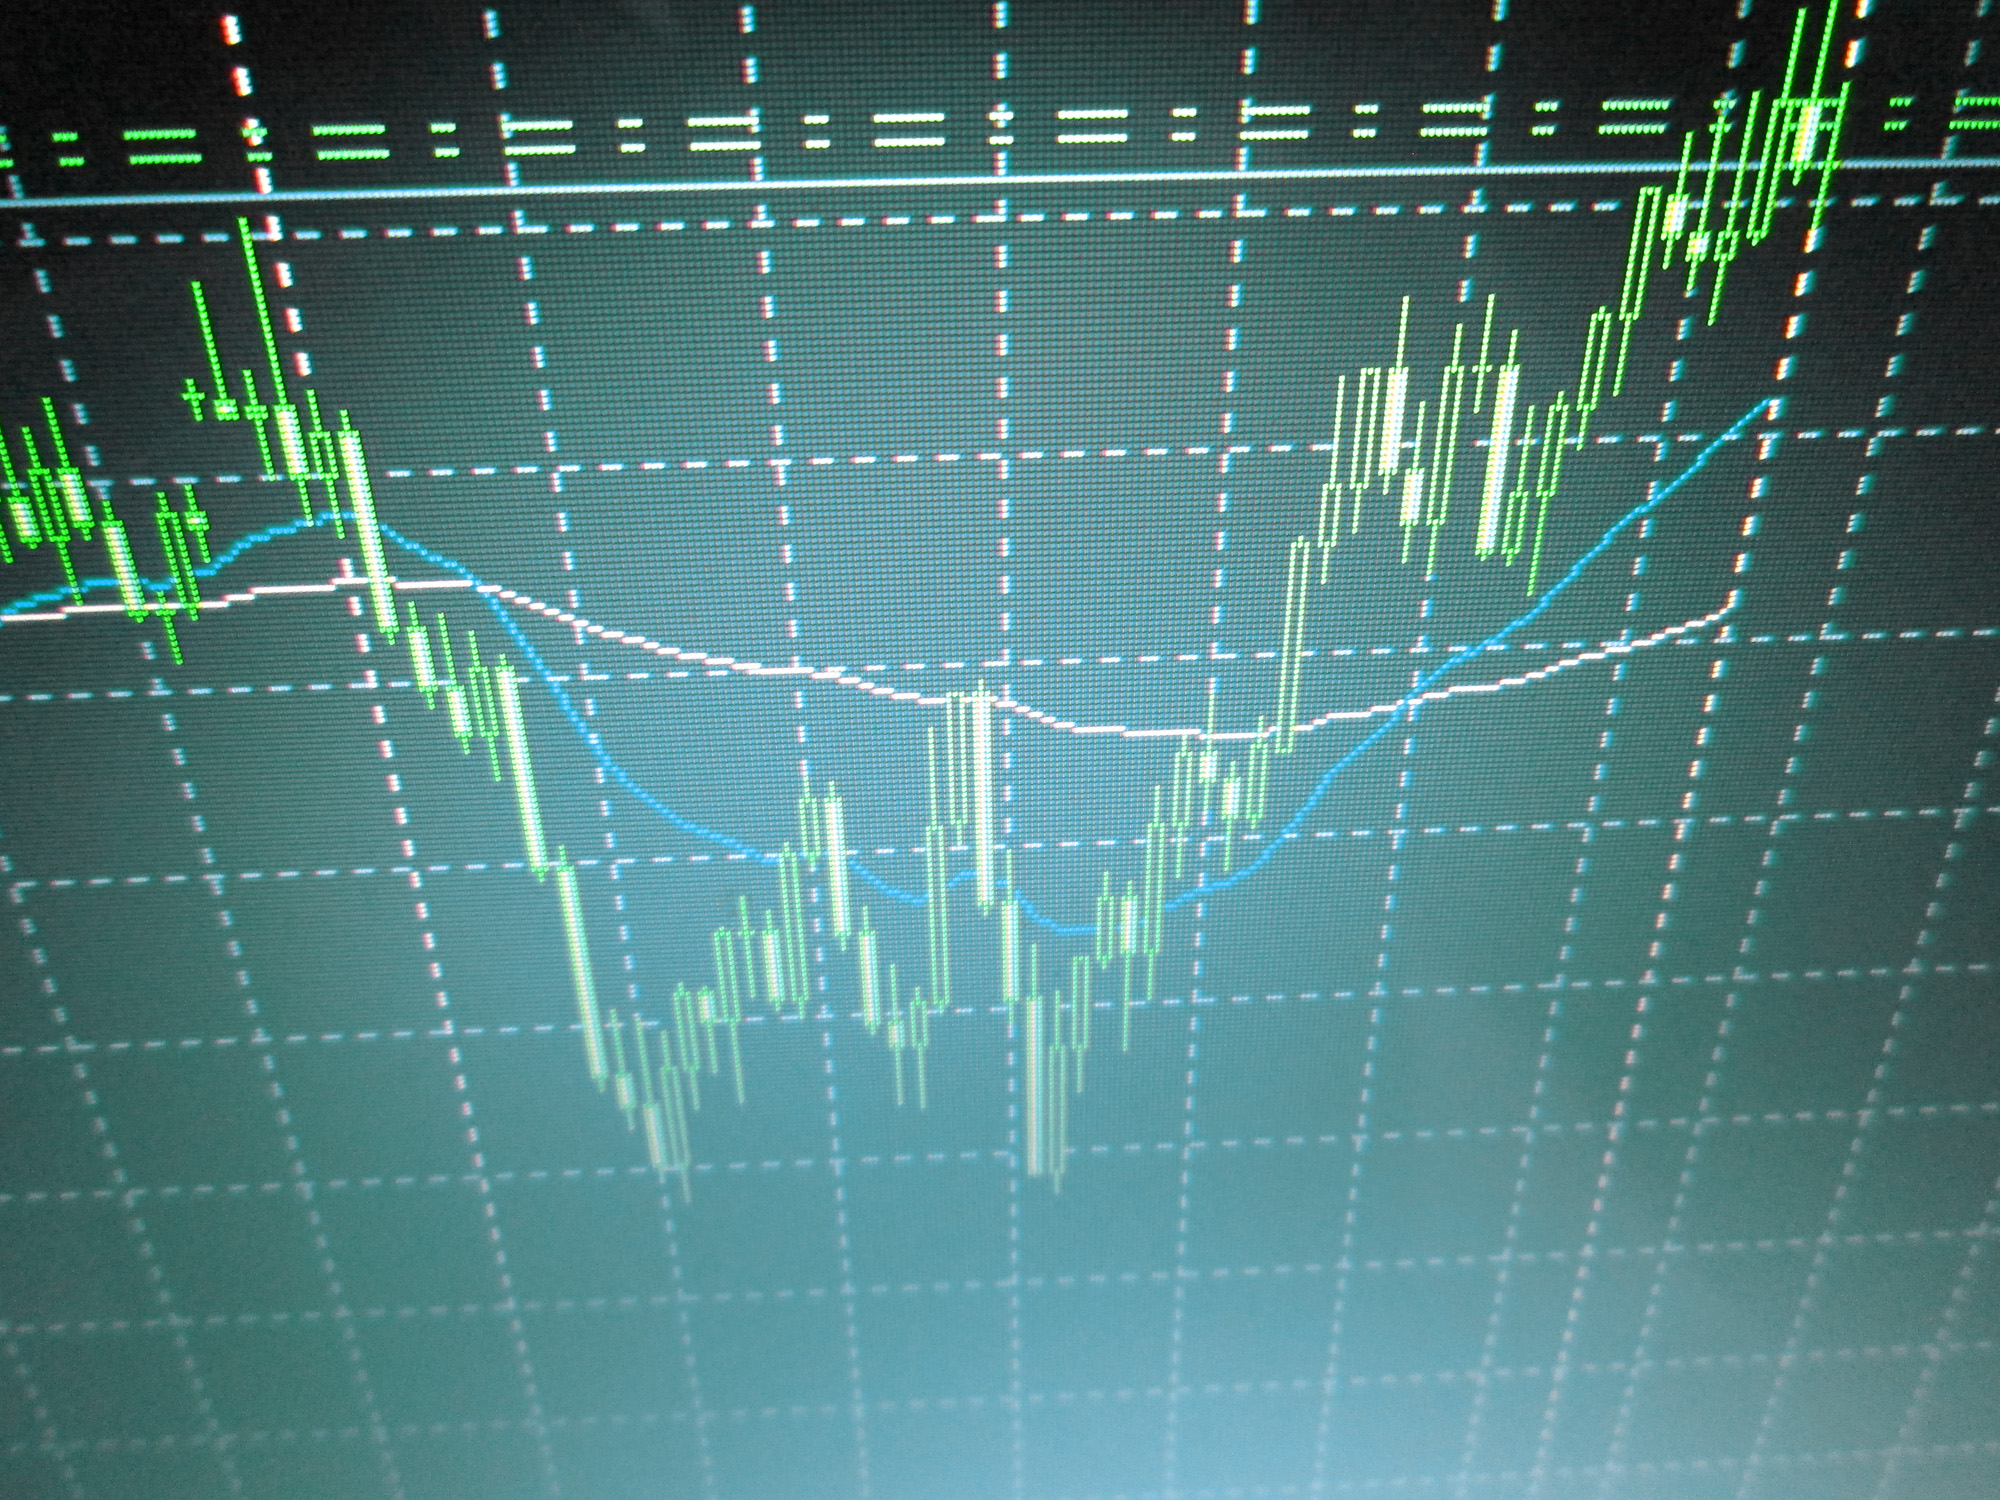 Stock market graph, Analysis, Monitor, Inflation, Information, HQ Photo